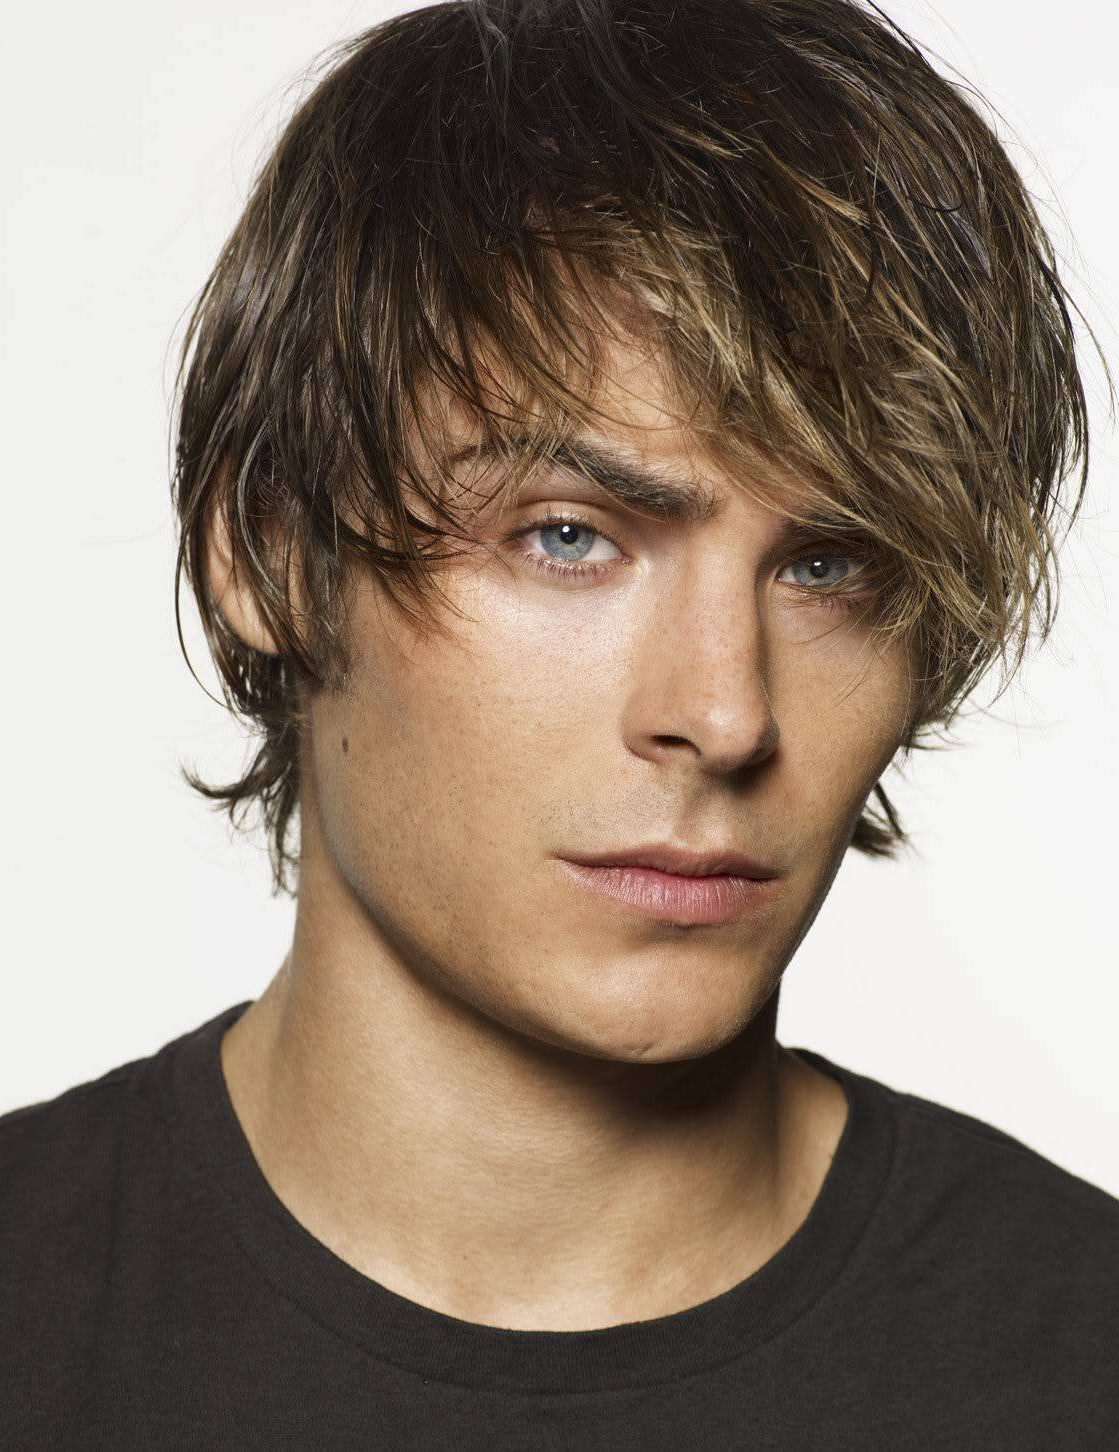 Short Straight Hairstyles For Men 2014 – Hairstylevill In Short Straight Hairstyles For Men (View 12 of 25)